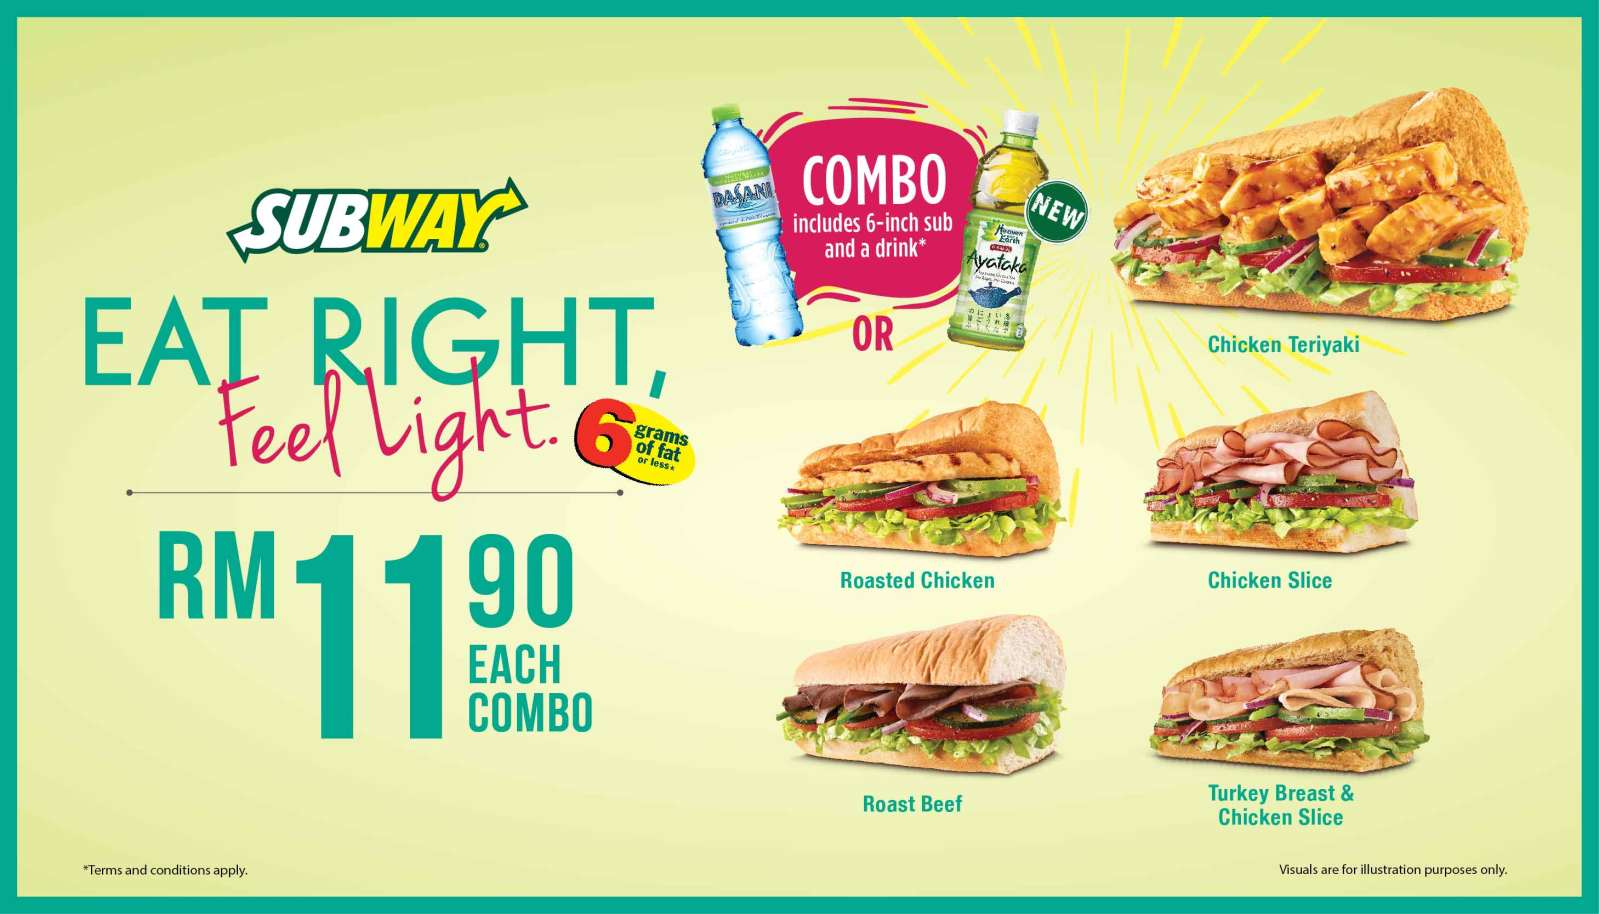 Image from SUBWAY®